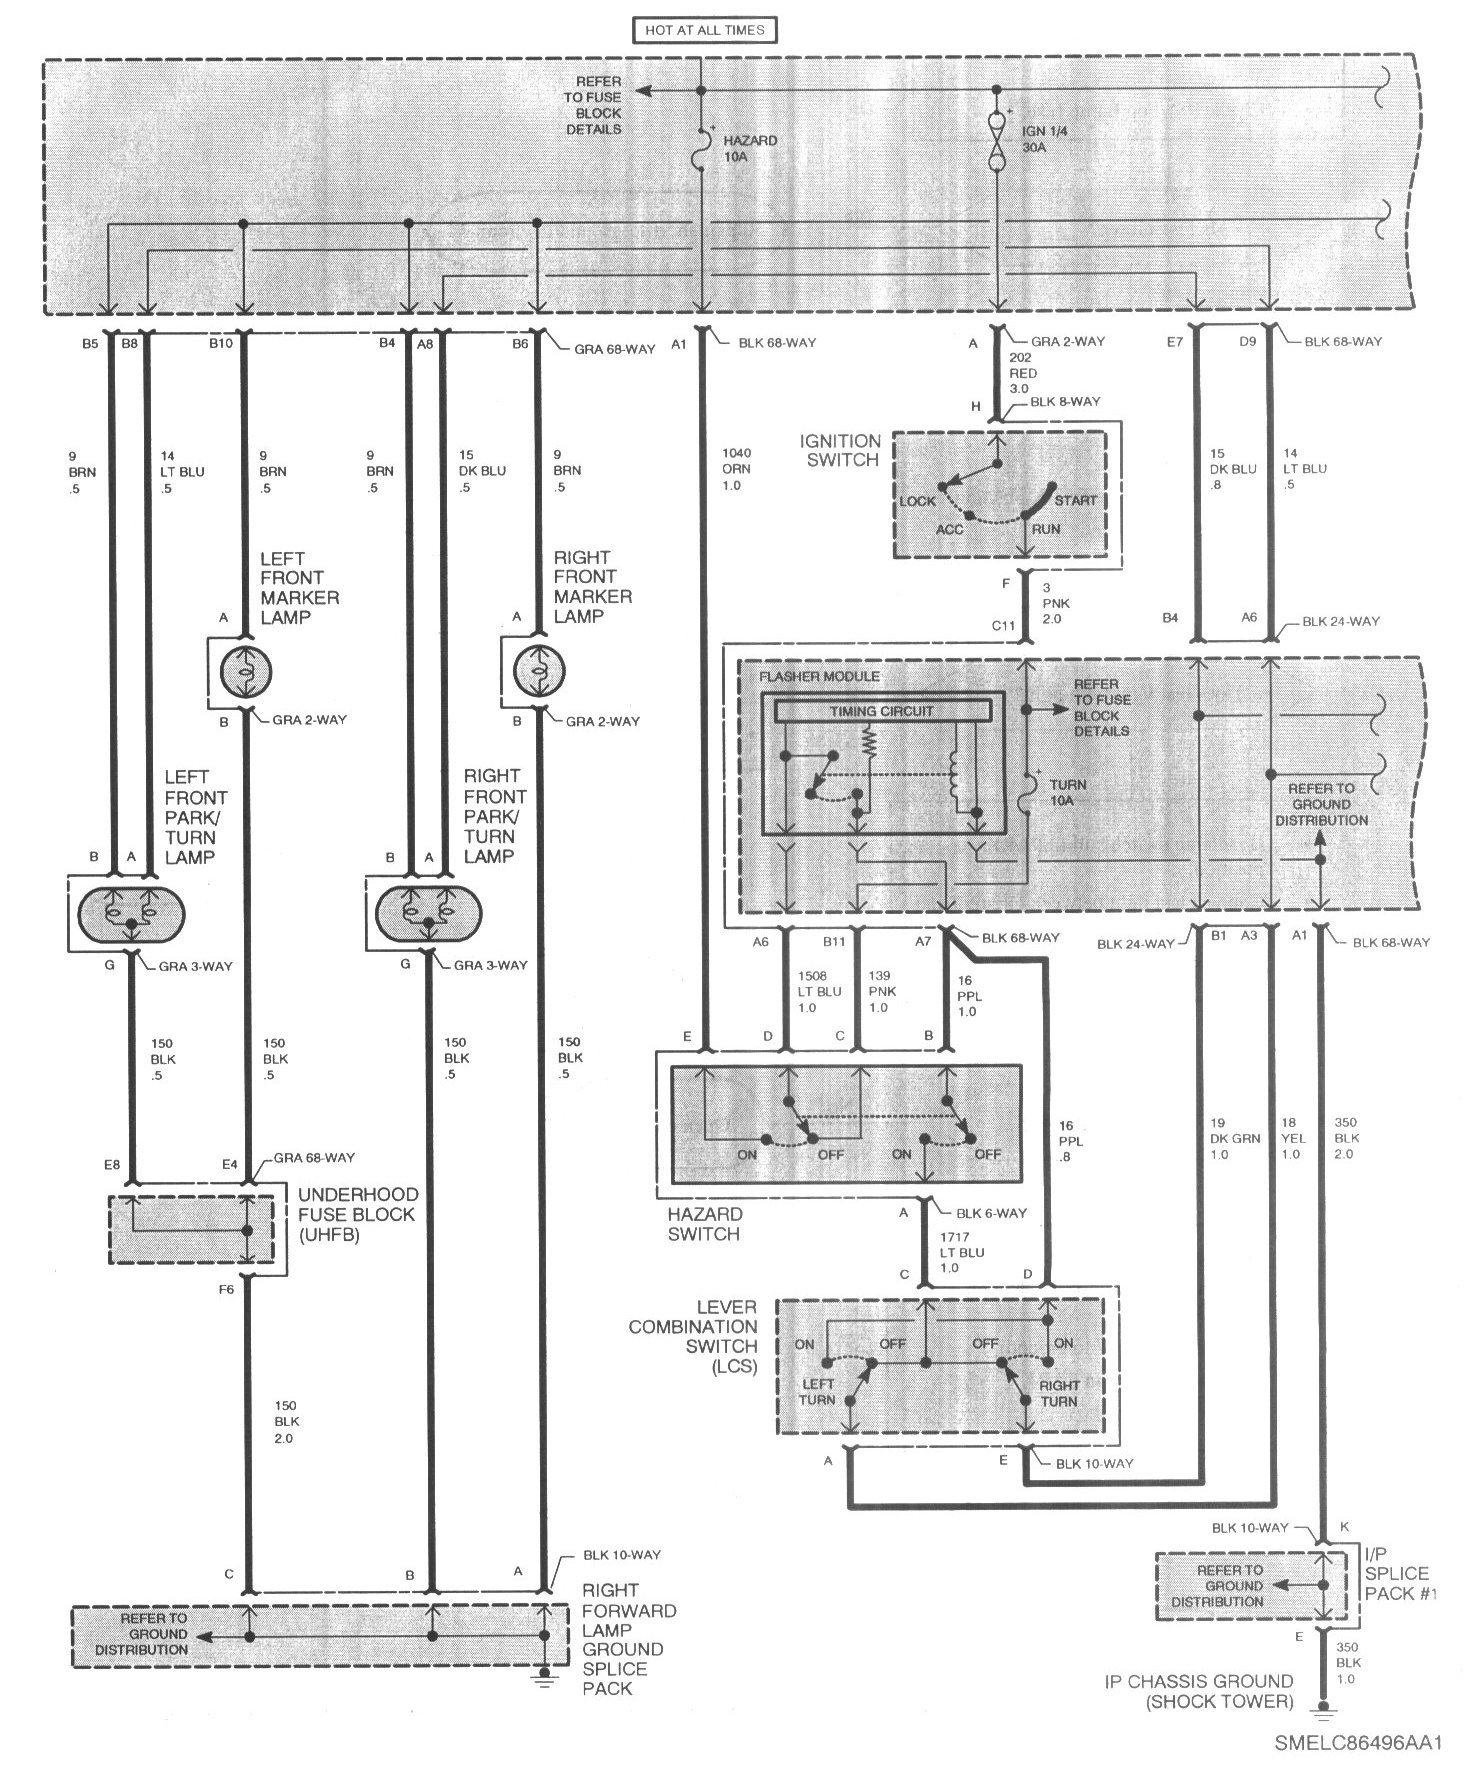 2002 saturn l300 ac wiring diagram 2002 free engine image for user manual  download 04 Saturn L300 Fuse Panel Diagram 04 Saturn L300 Fuse Panel Diagram